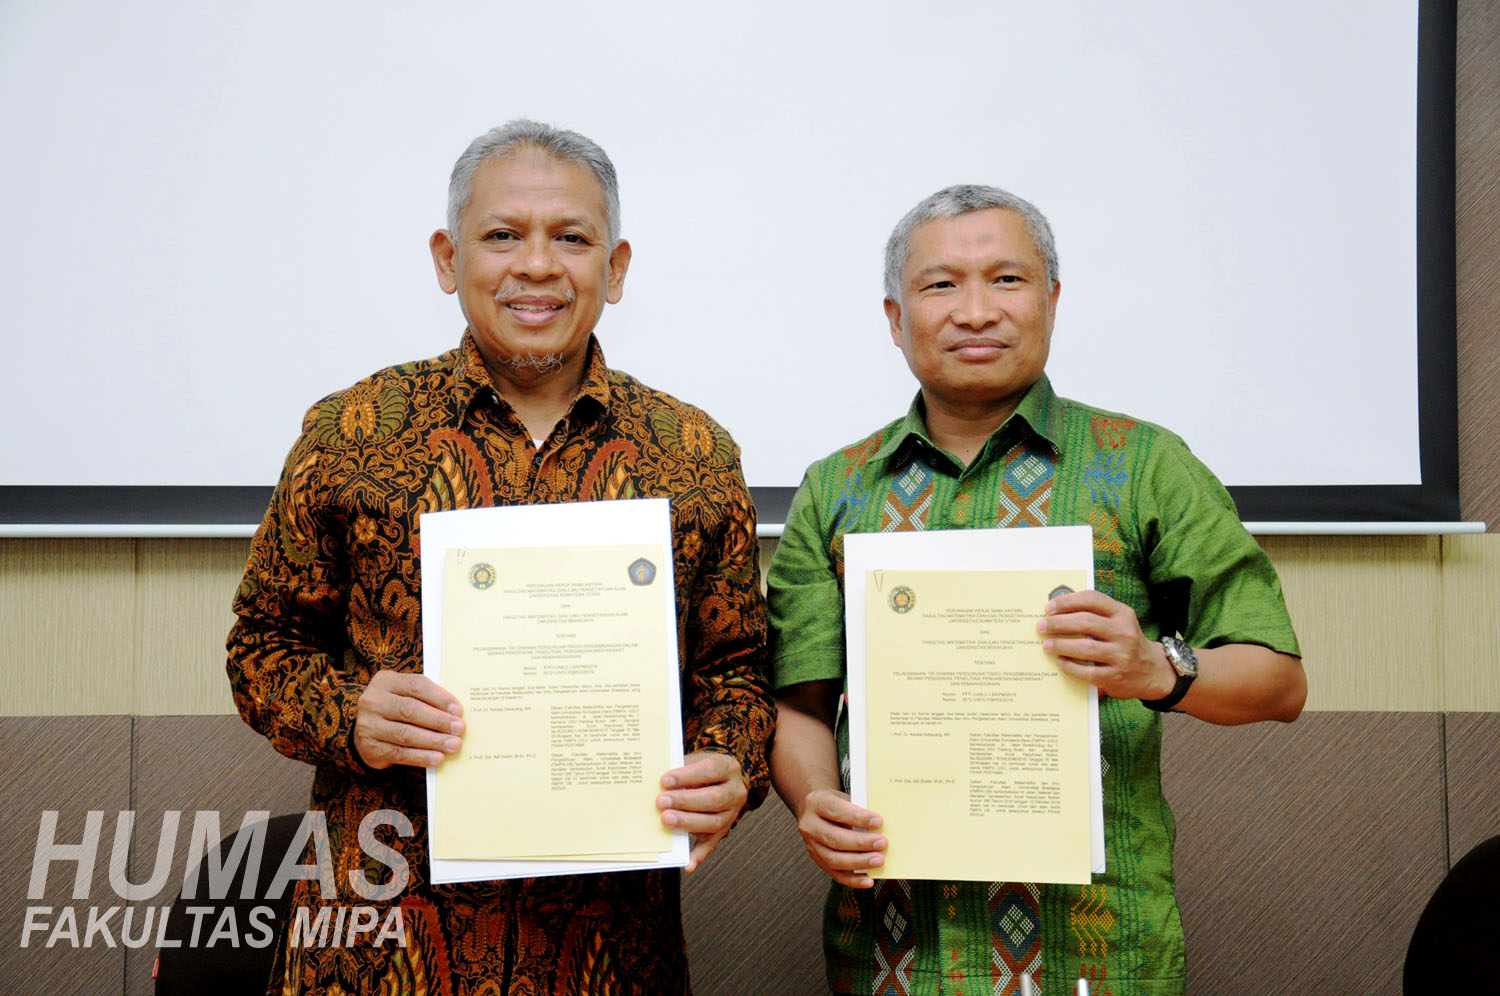 Dean of FMIPA UB signed a memorandum of understanding (MOU) with the University of North Sumatra (USU)